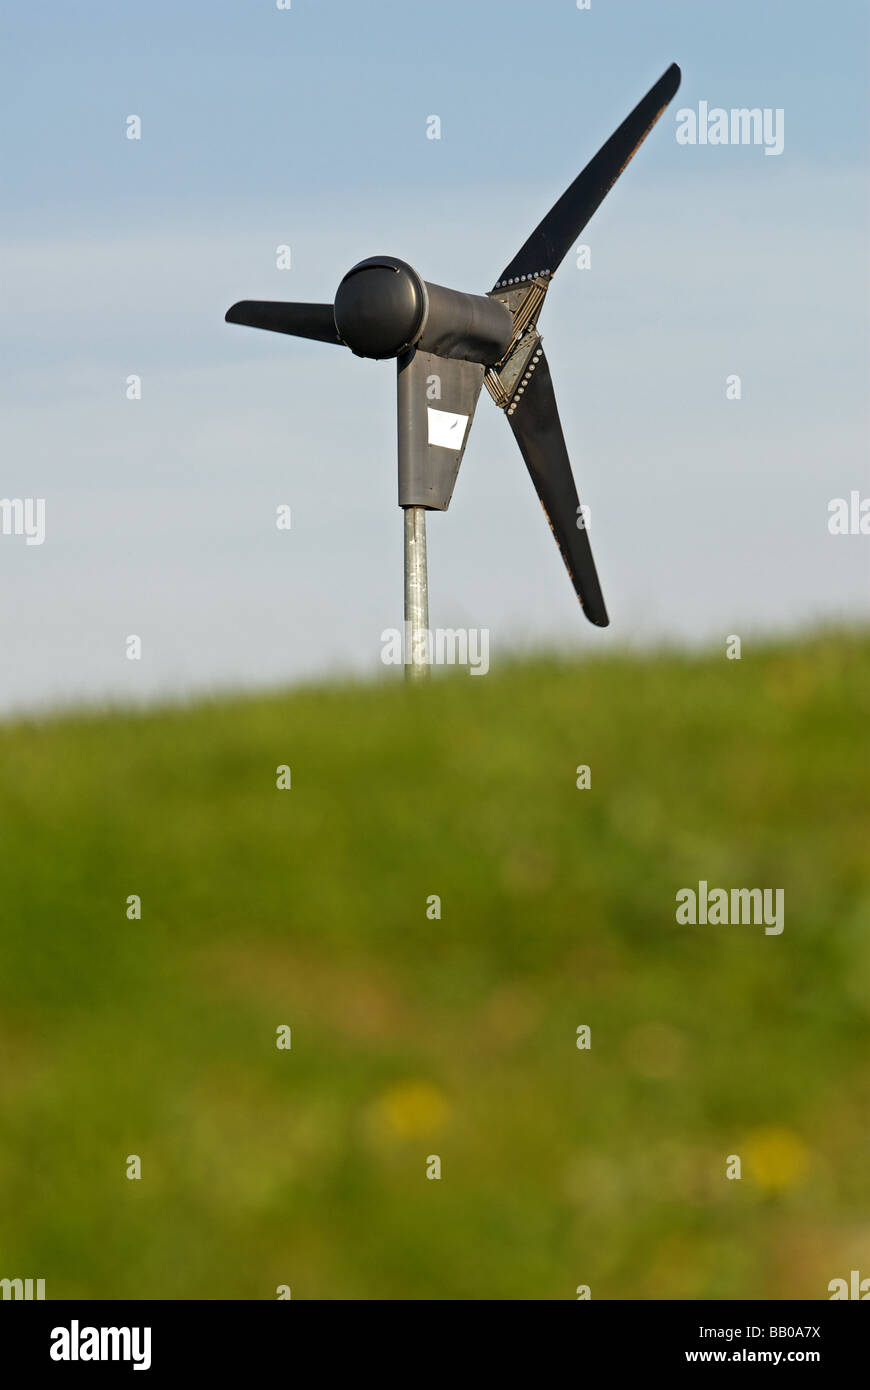 6KW wind turbine manufactured by Proven Energy, suppling